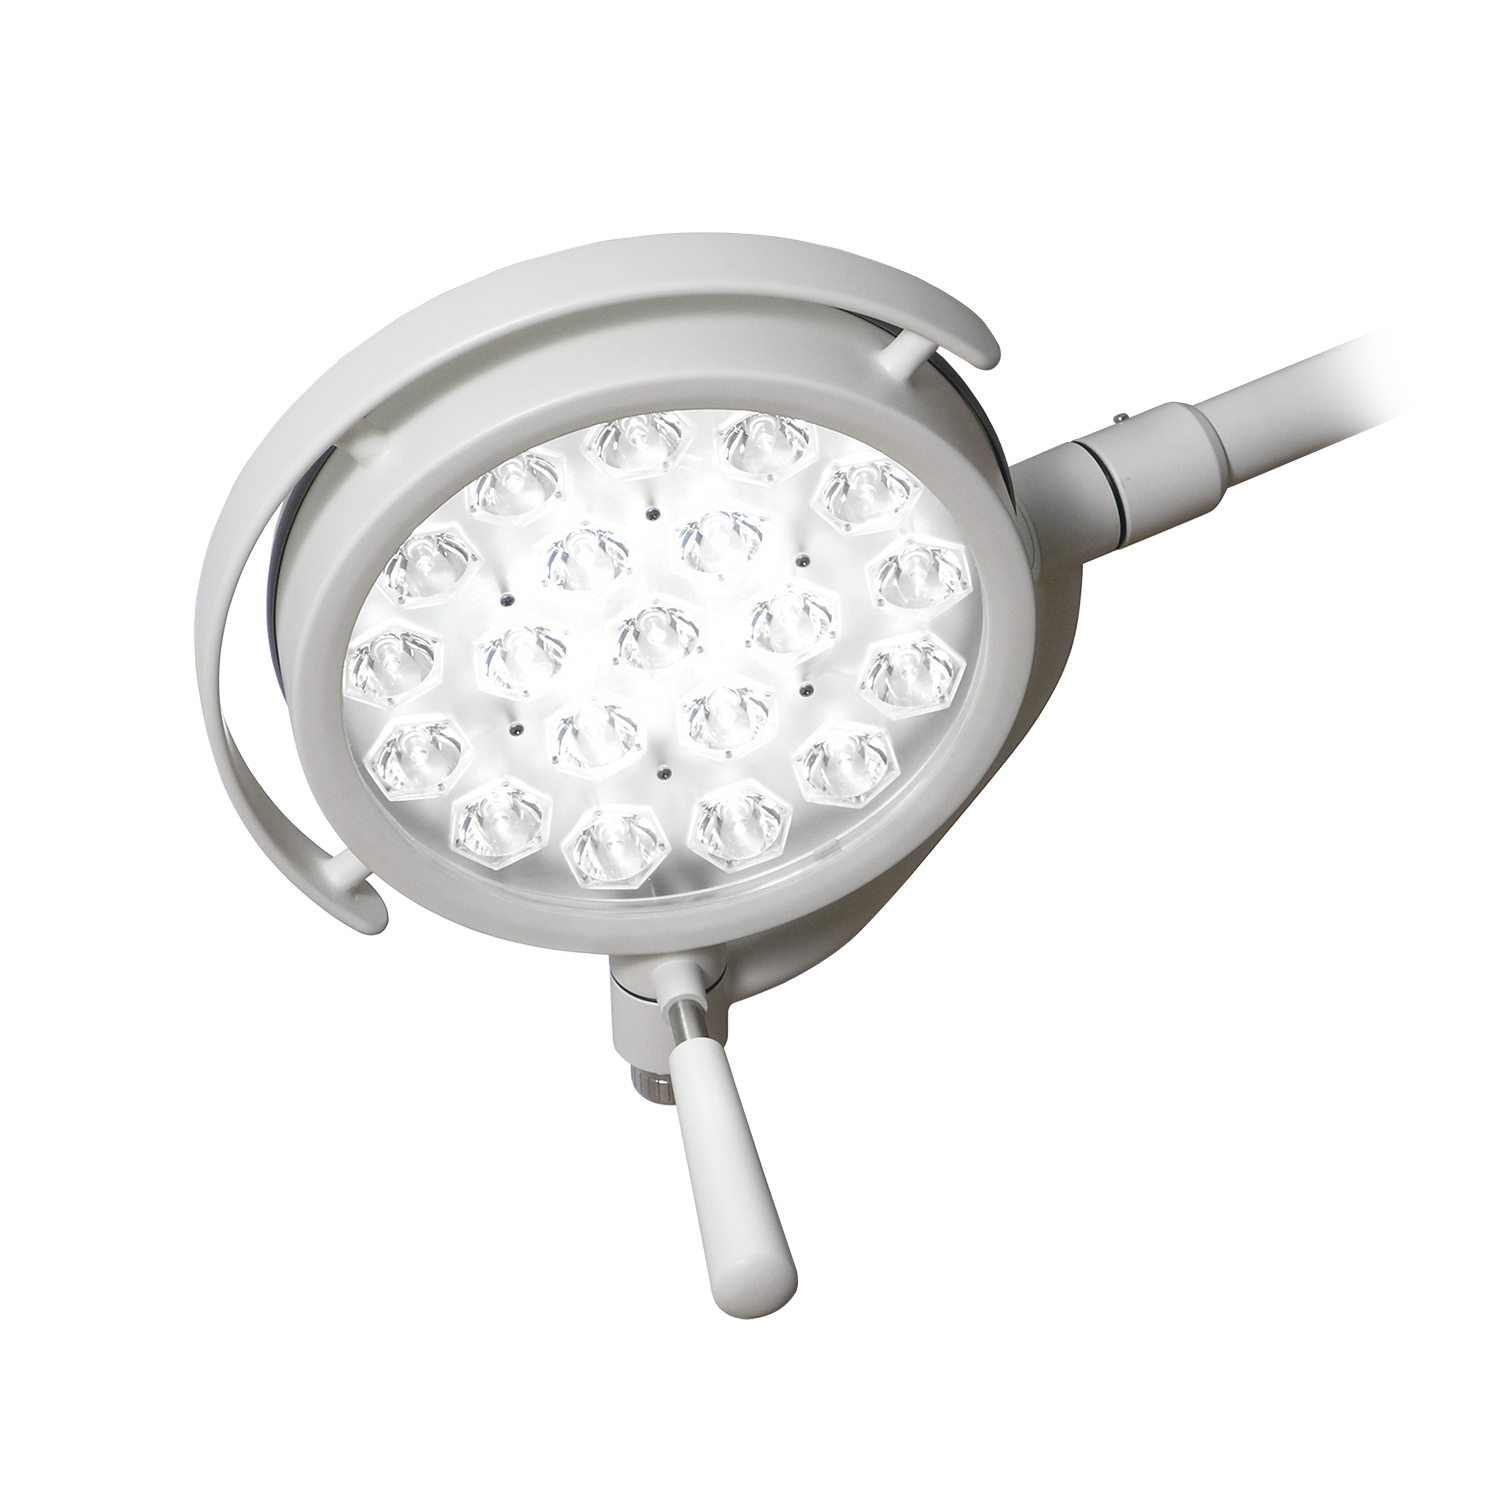 DRE SLS 2500 LED Surgical Lights